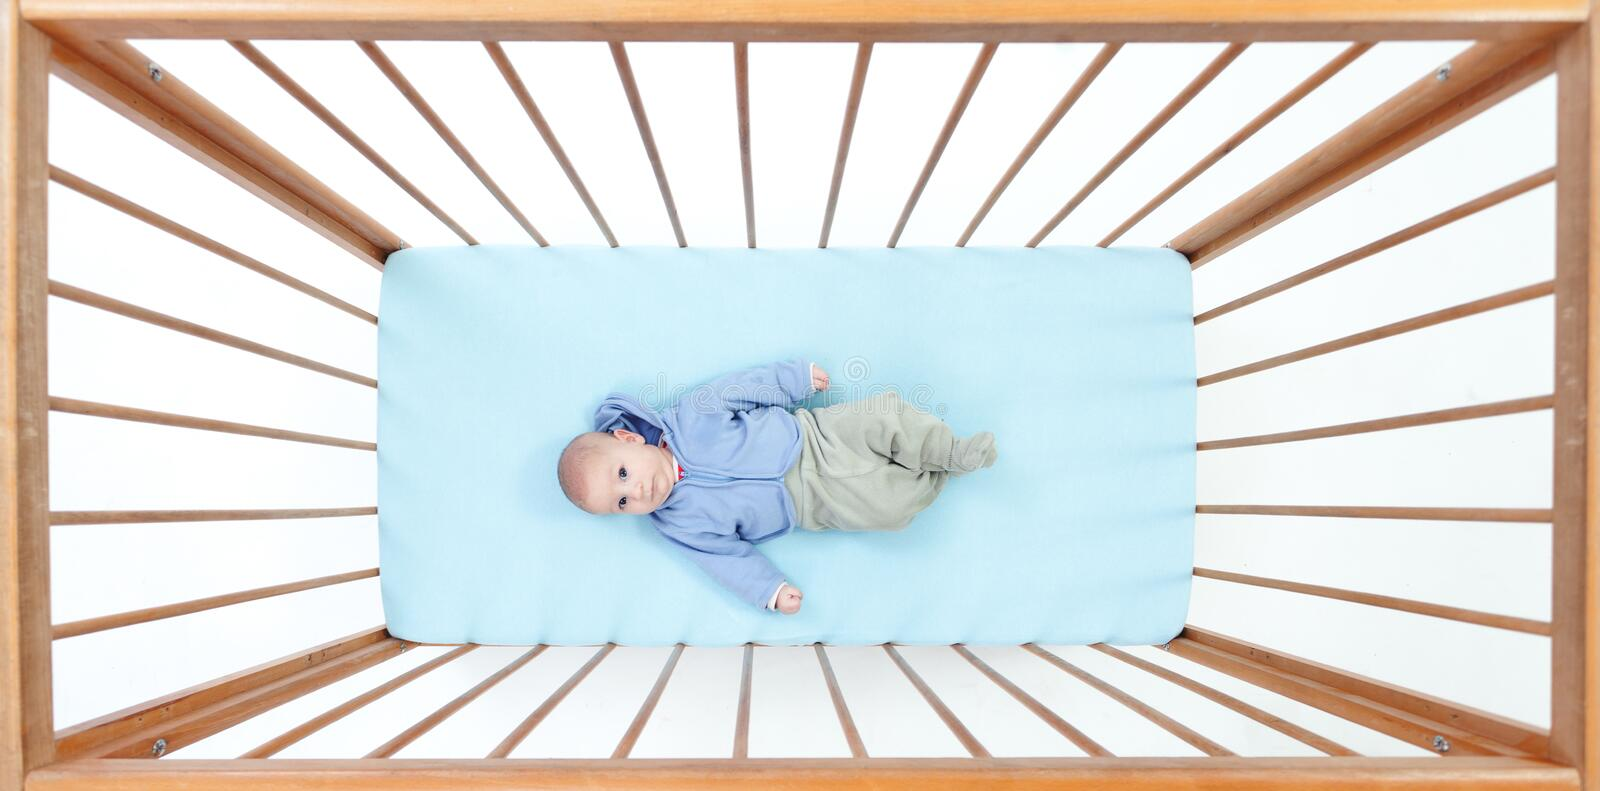 Download Two Months Baby Boy Lying In A Crib Stock Photo - Image: 16294682